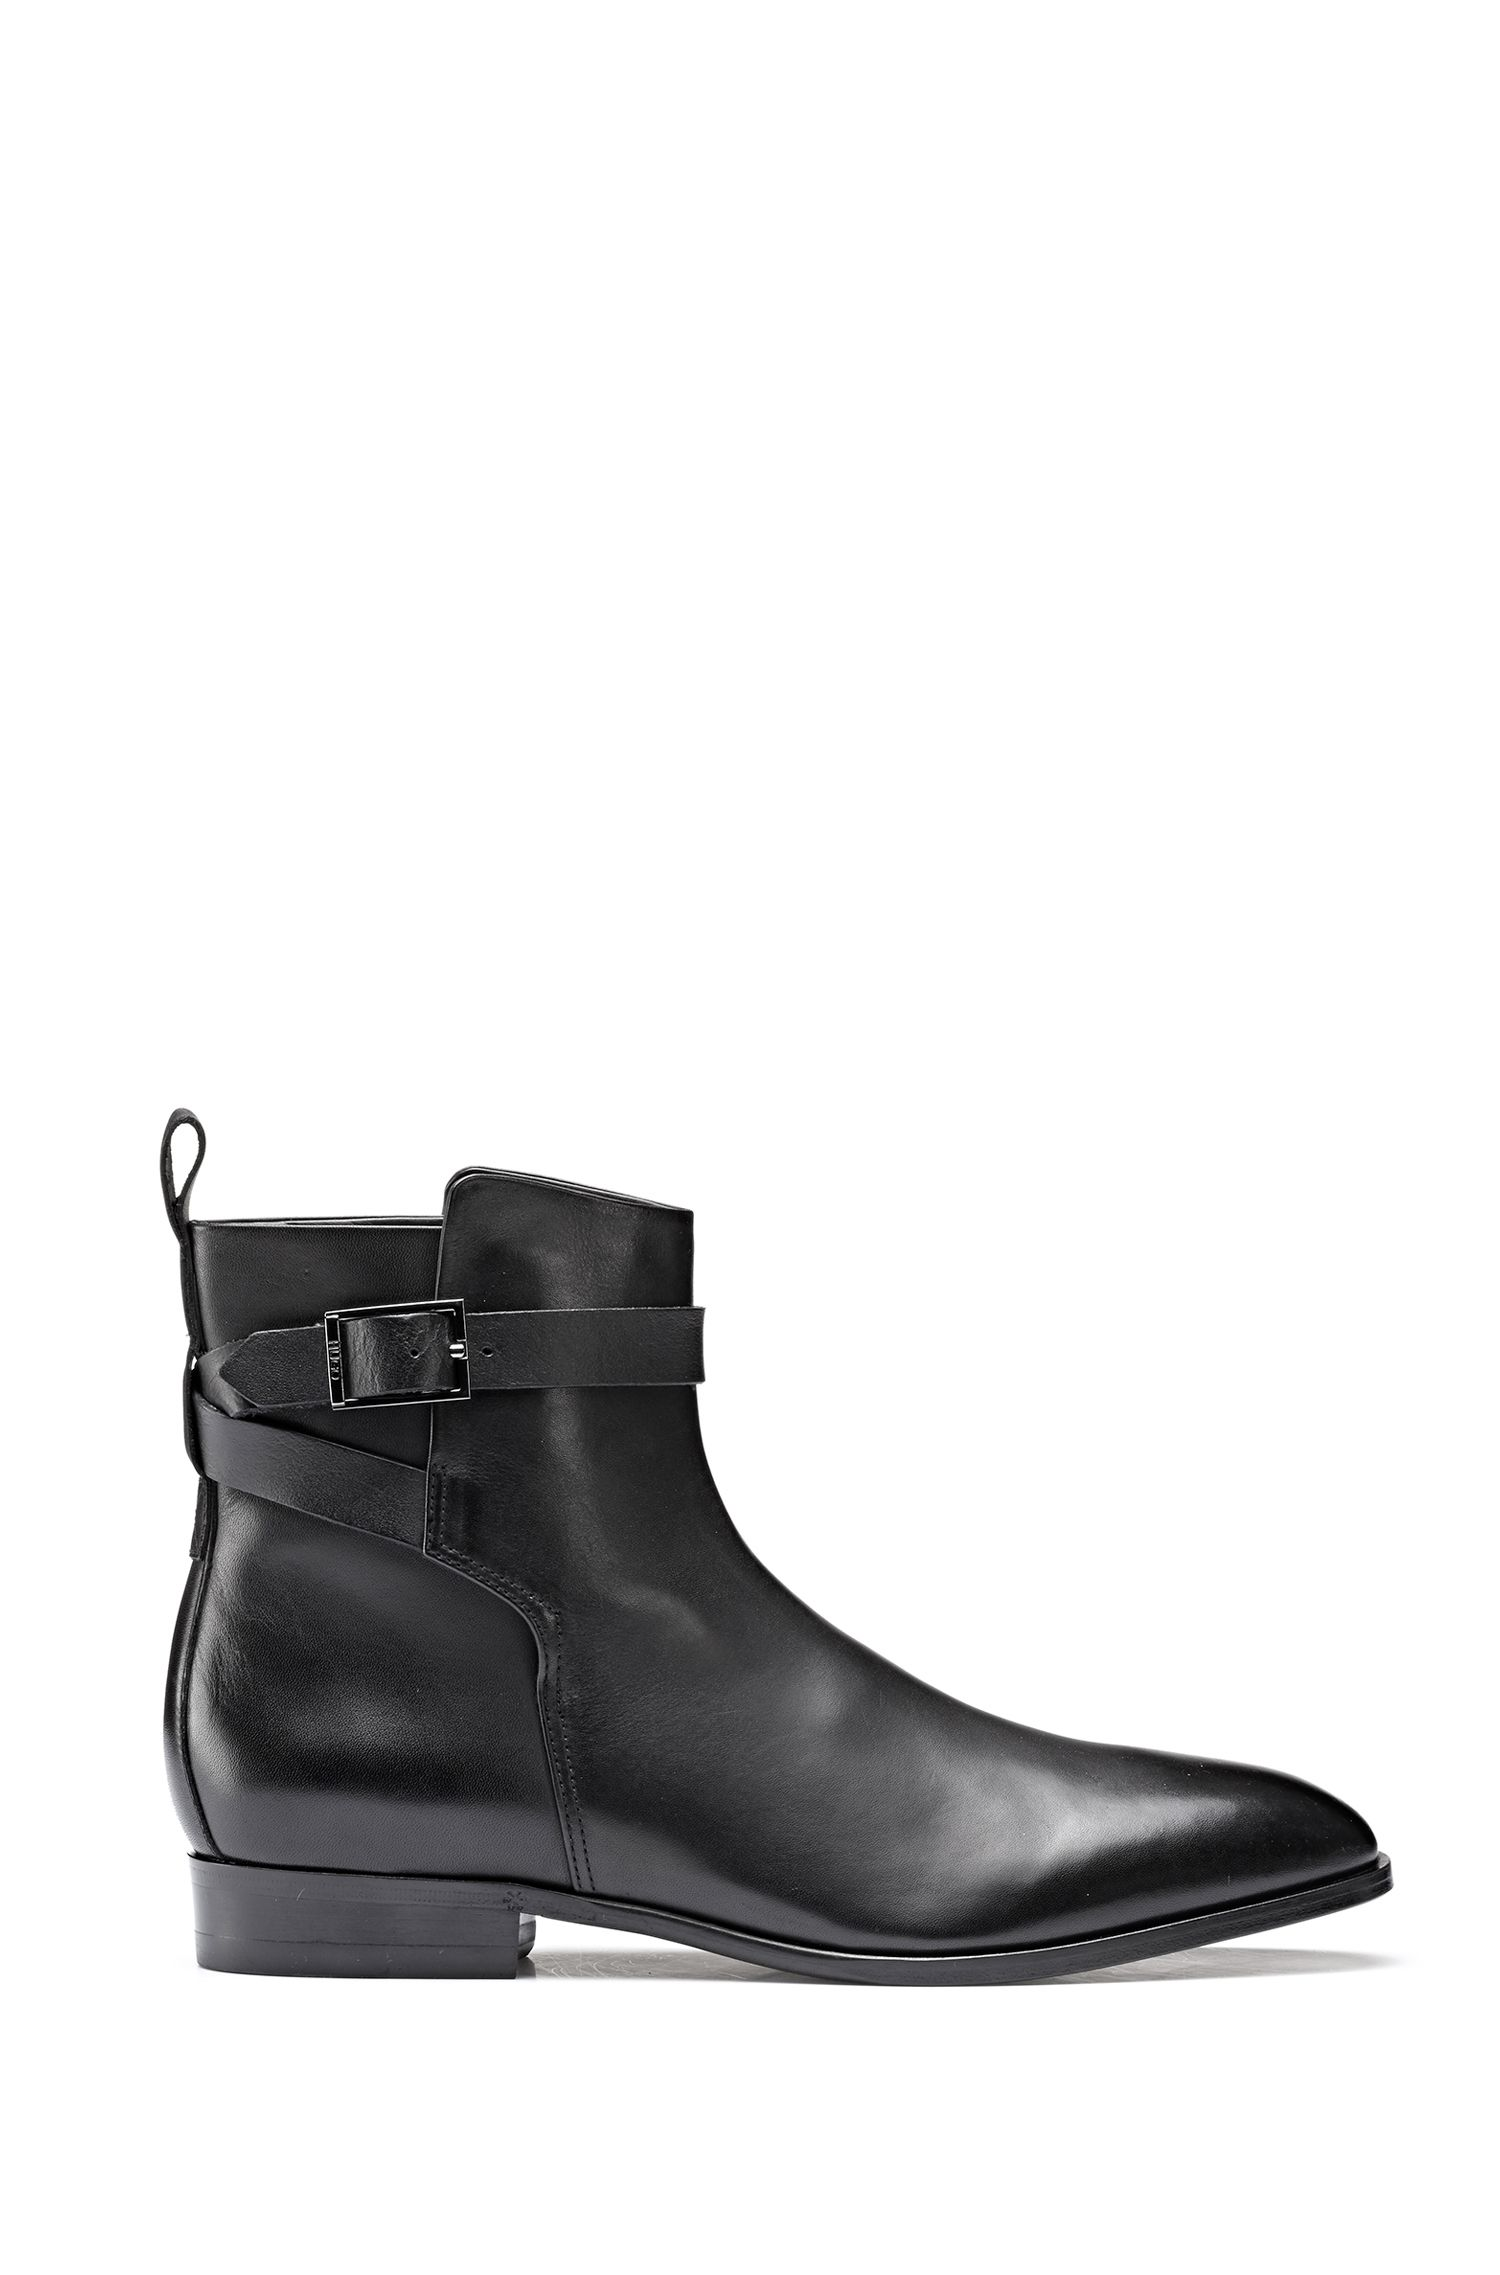 Leather Chelsea boots with buckled ankle strap, Black